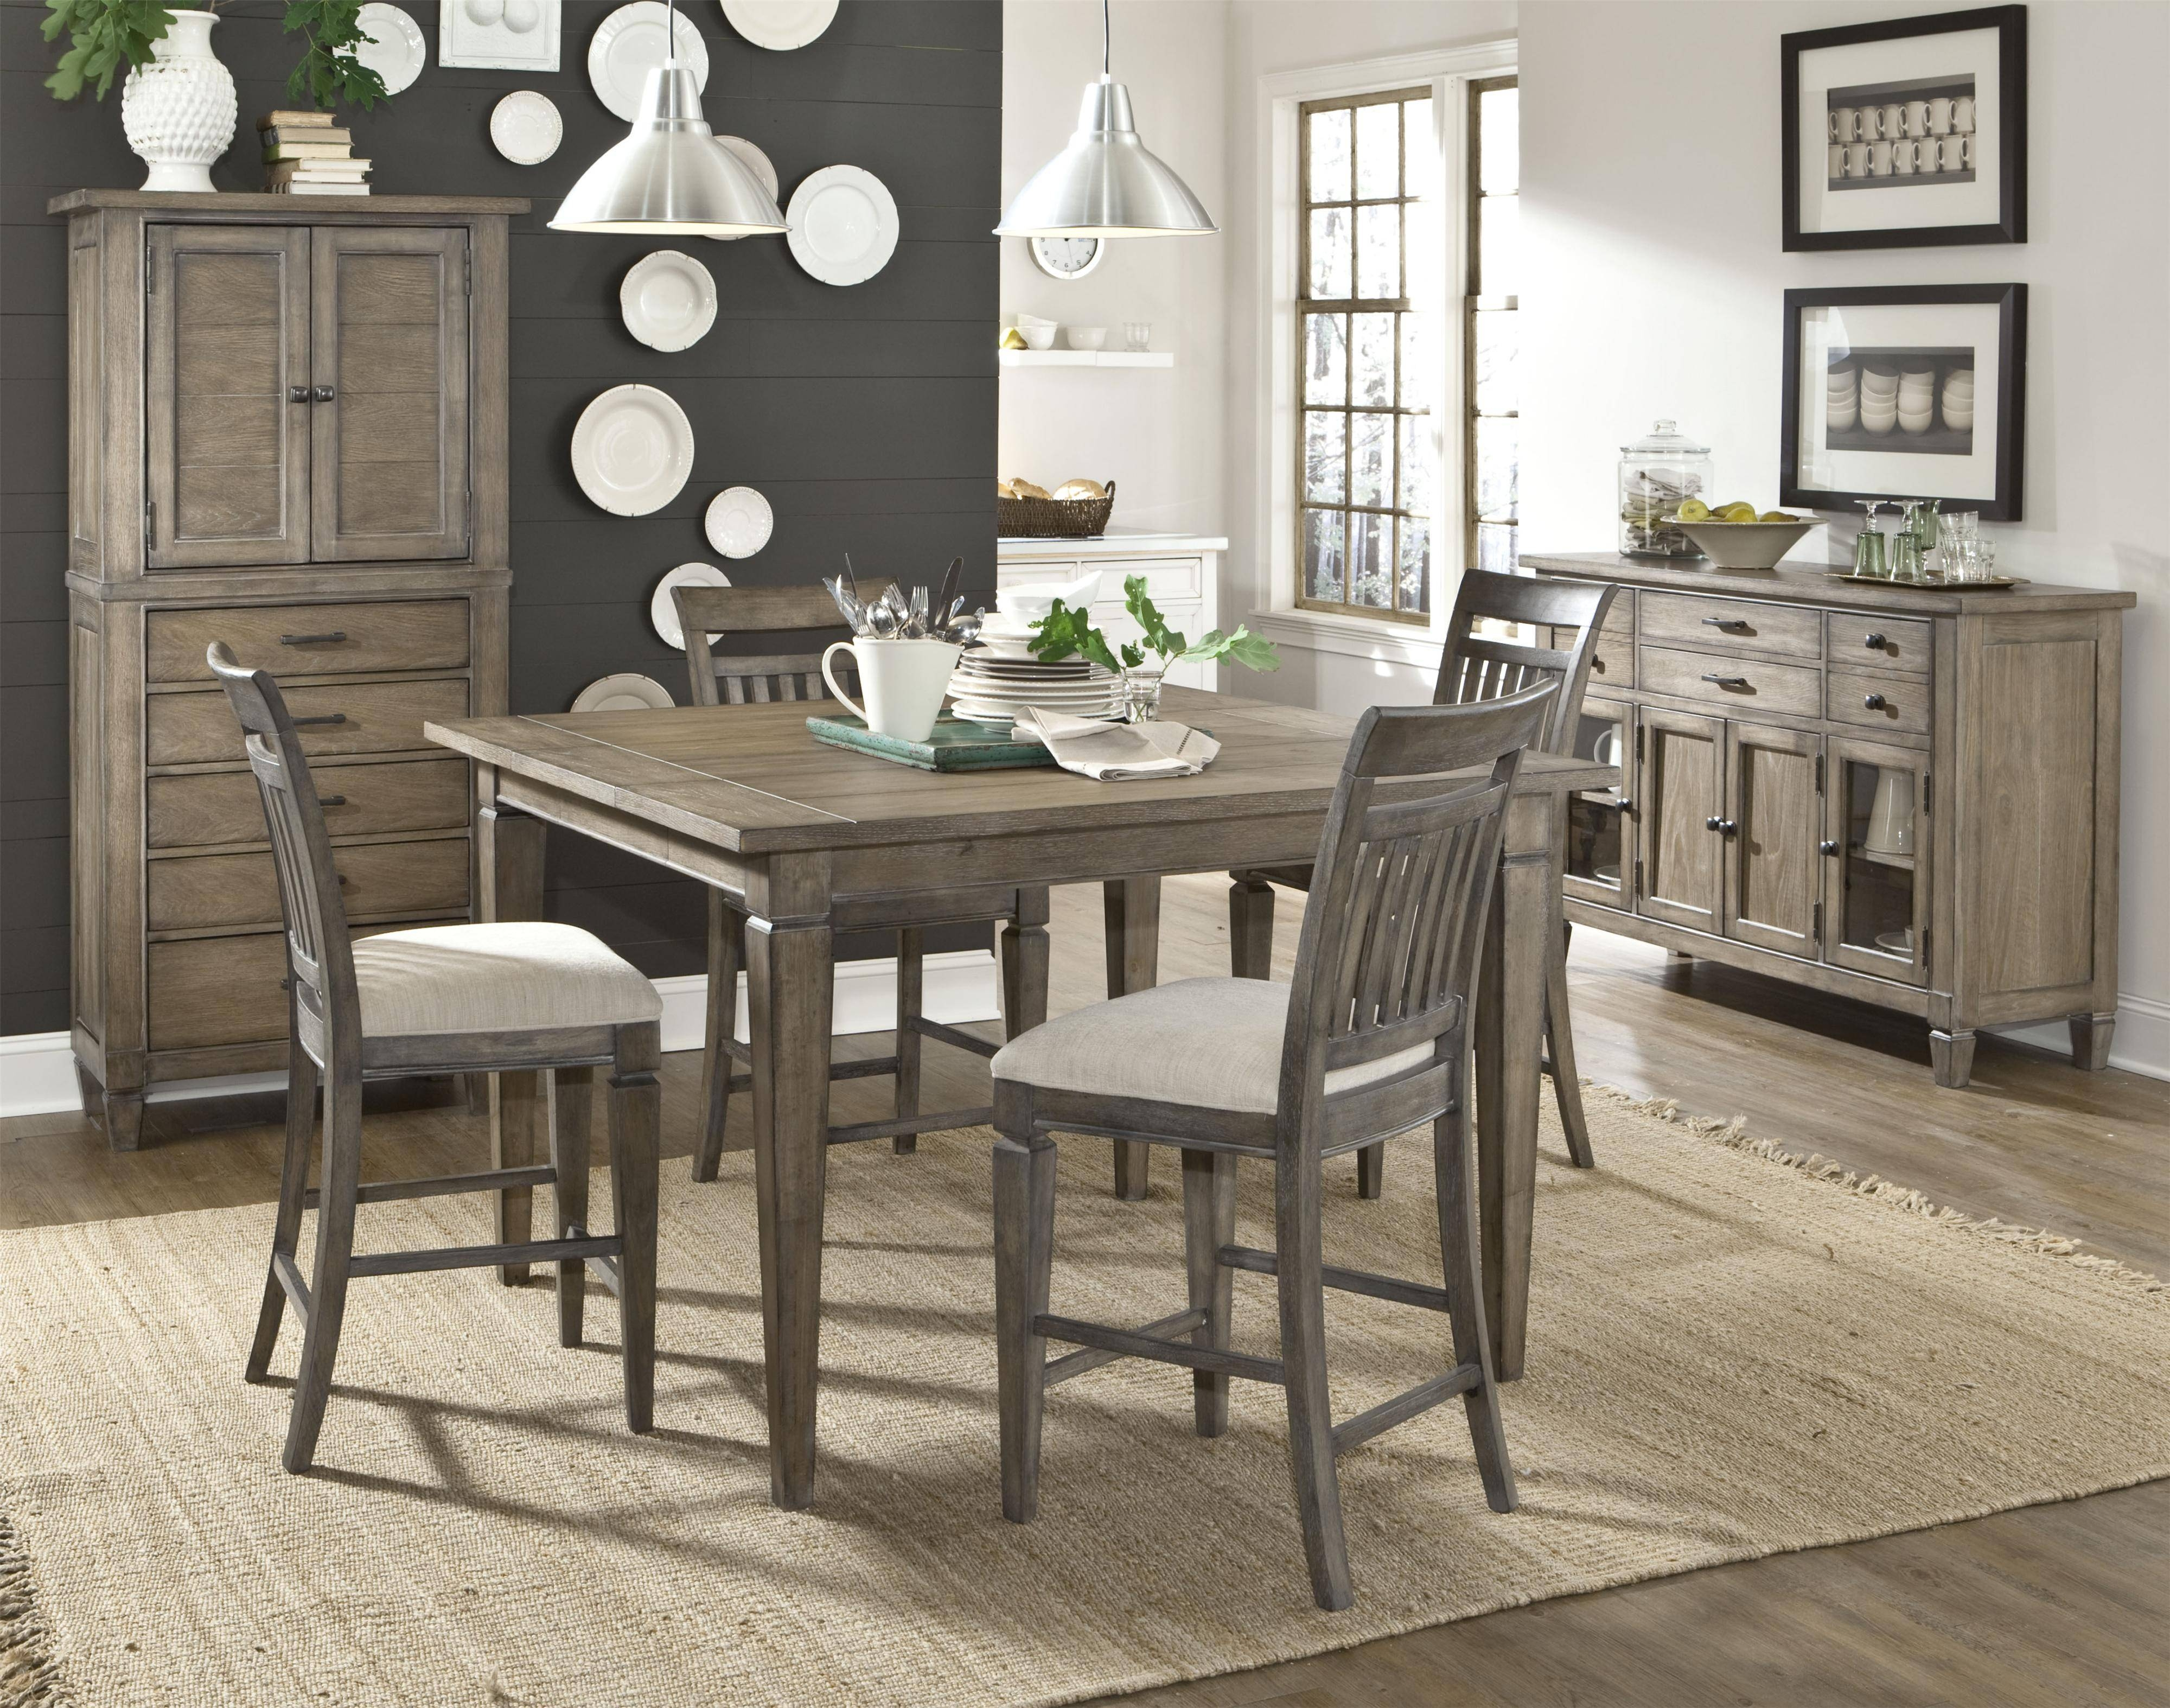 Peachy Dining Room Set Sideboard | Home Inspired 2018 With Regard To Most Current Dining Room Sets With Sideboards (#14 of 15)